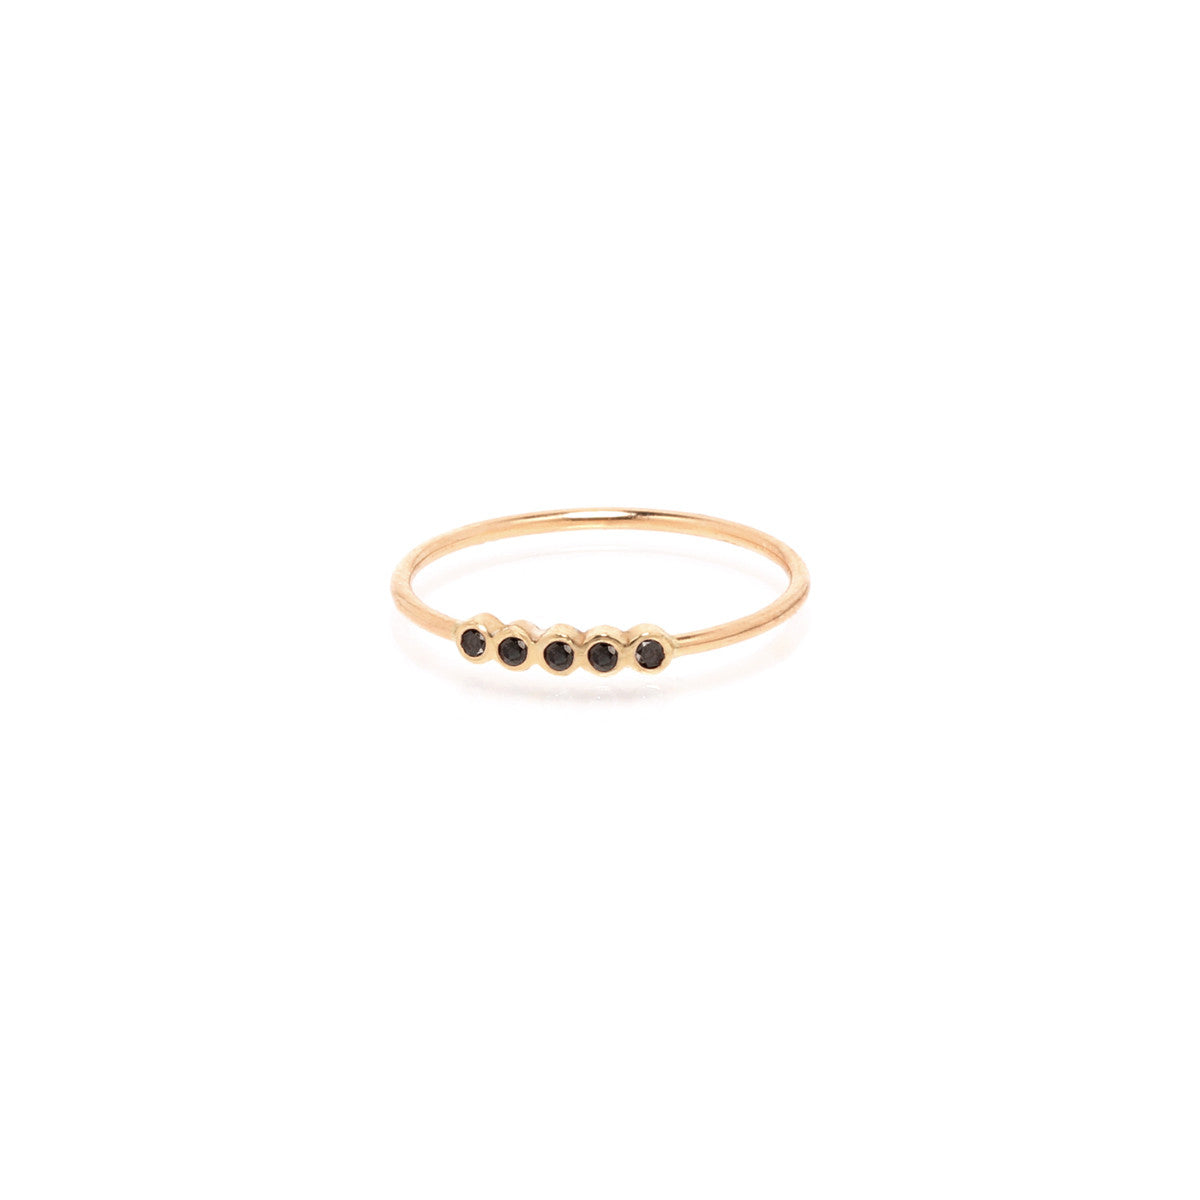 Zoë Chicco 14kt Yellow Gold 5 Tiny Black Diamond Bezel Set Ring